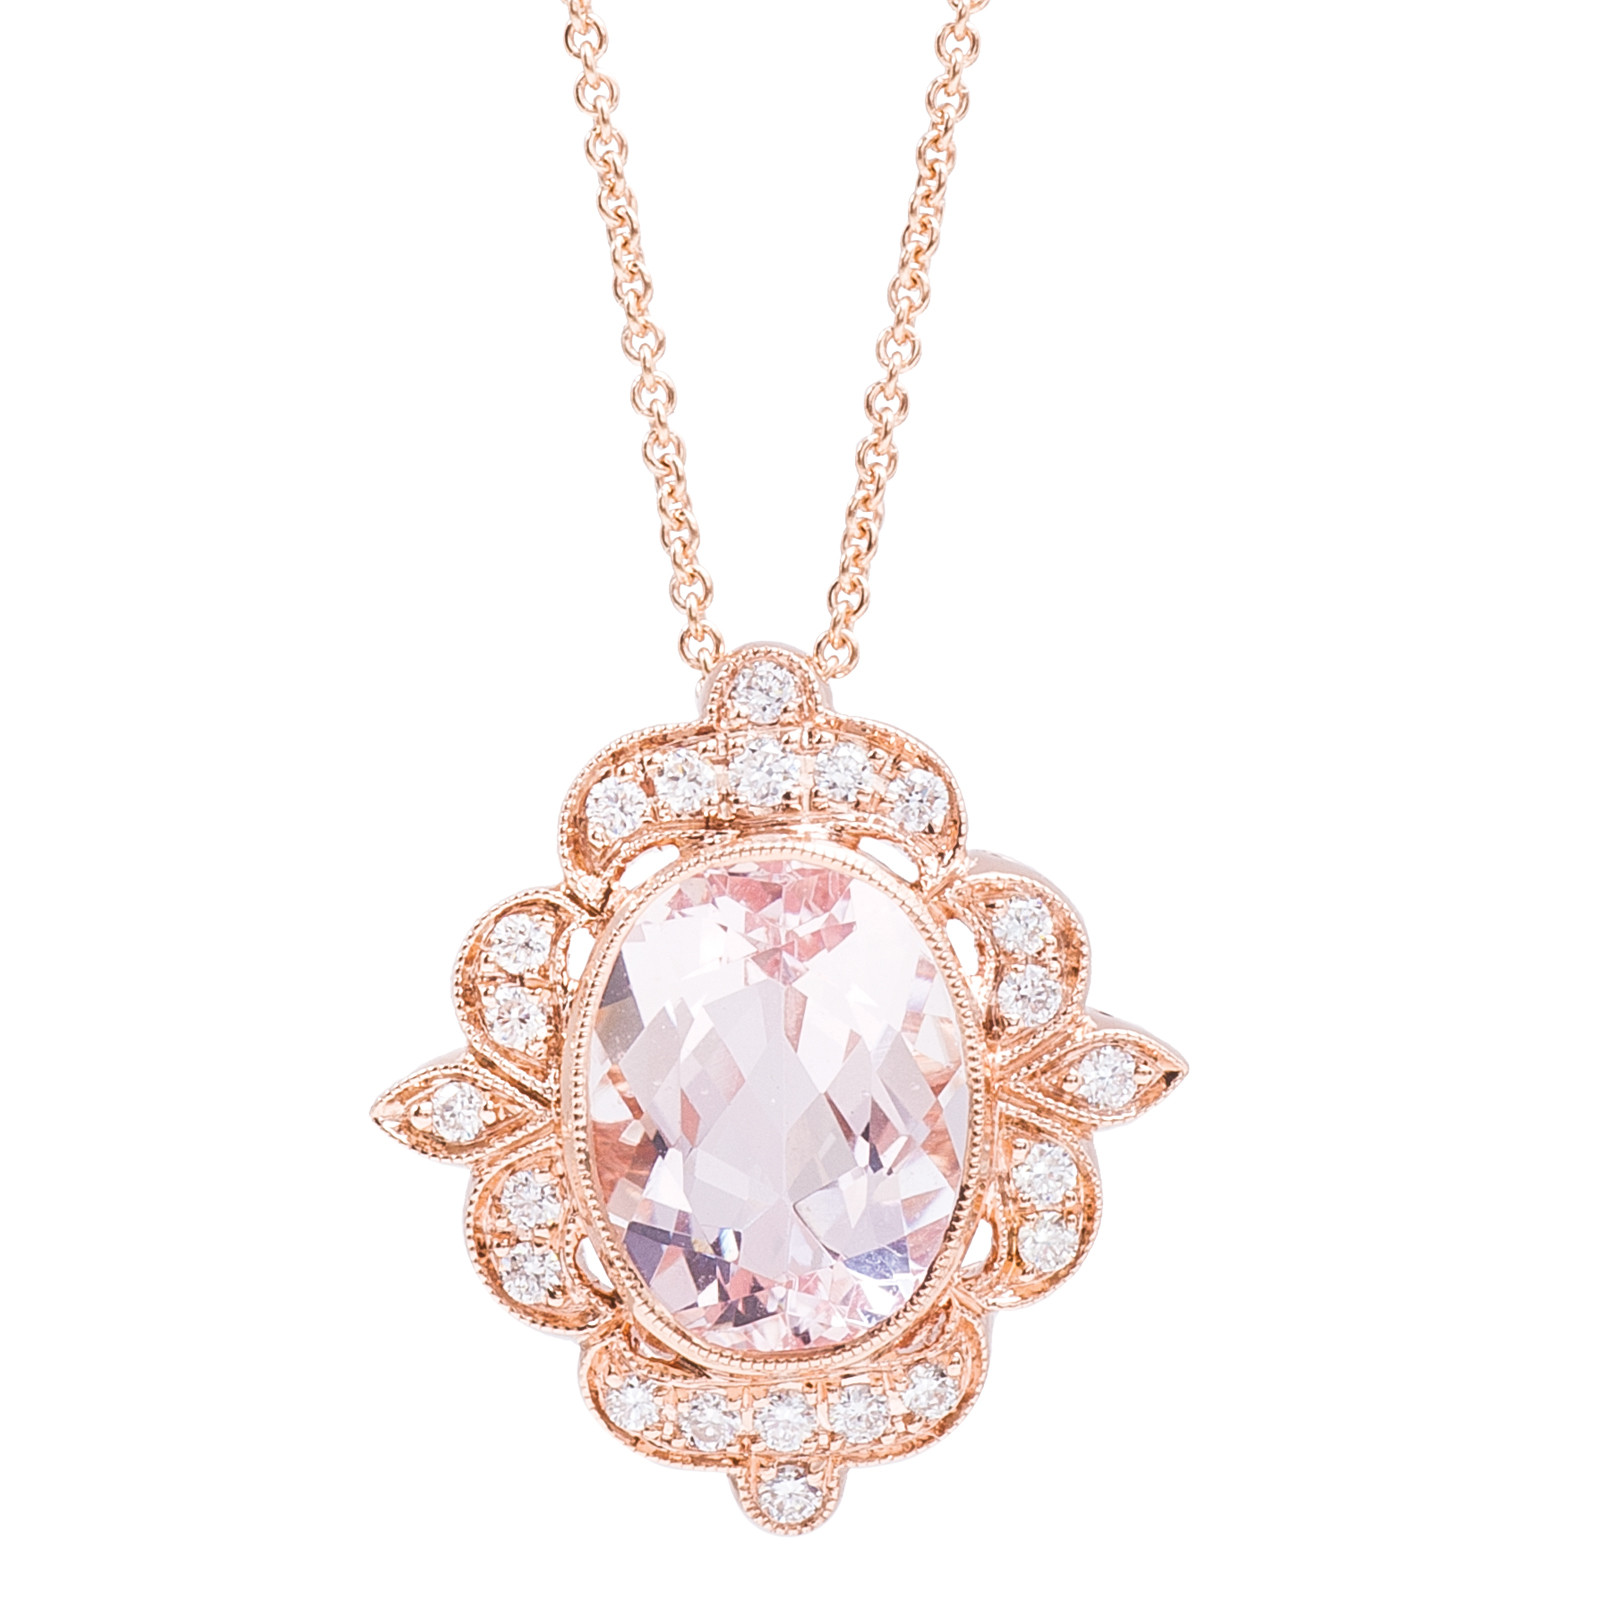 morganite necklace find pendant carats products pink light cts rose rare gold karats diamond and